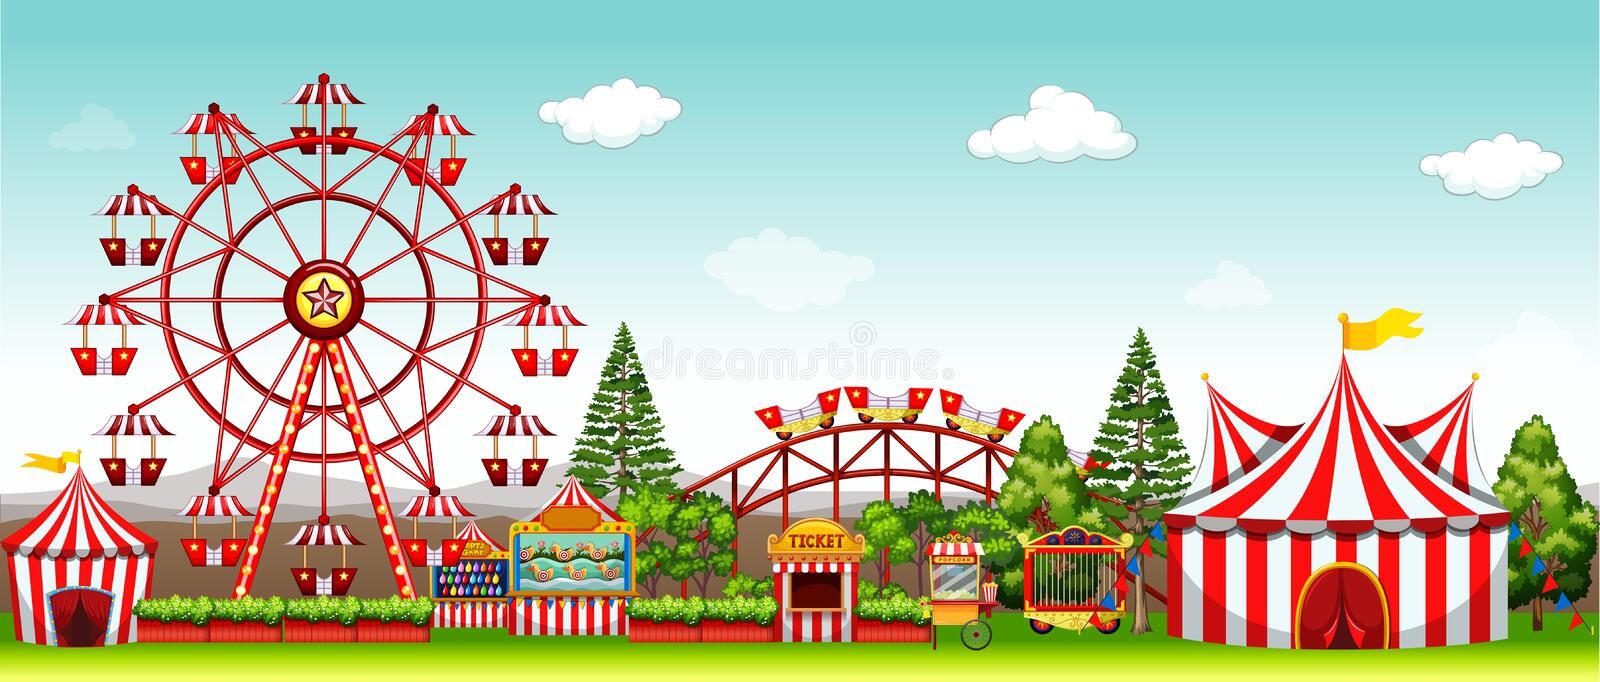 Amusement park at daytime. Illustration stock illustration